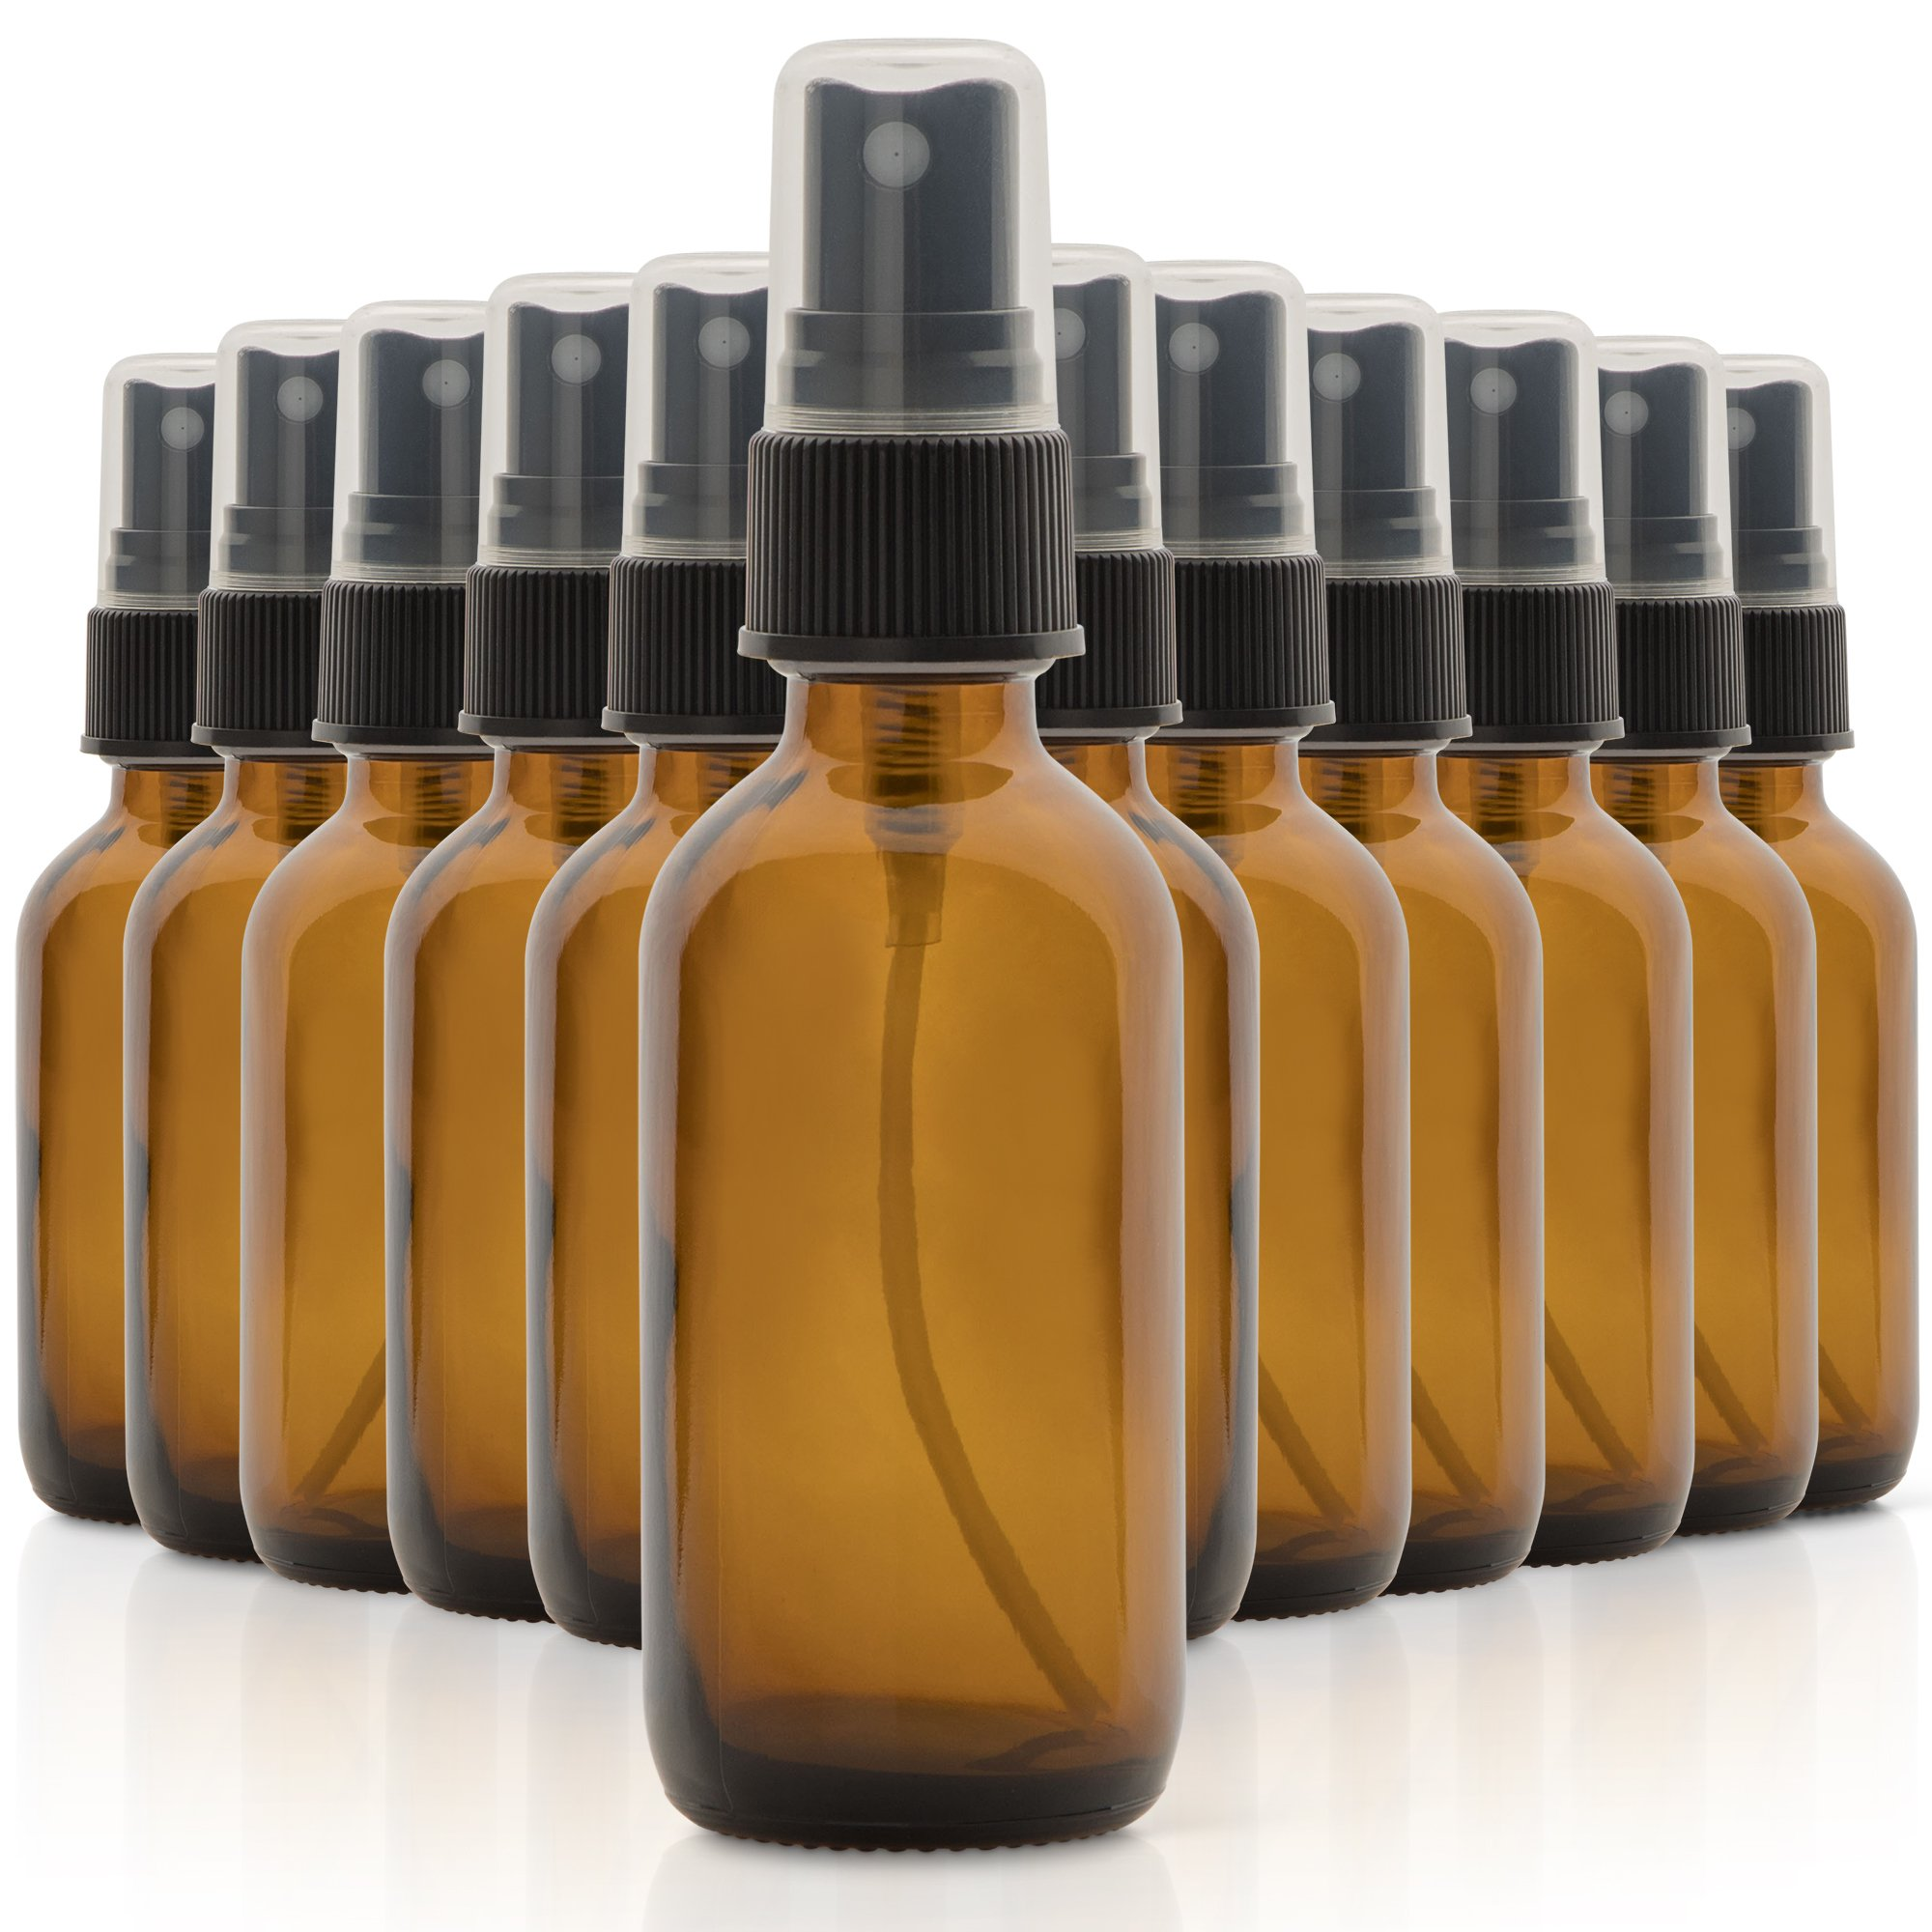 Set of 12, 2oz Amber Glass Spray Bottles for Essential Oils - with Fine Mist Sprayers - Made in the USA by 1790